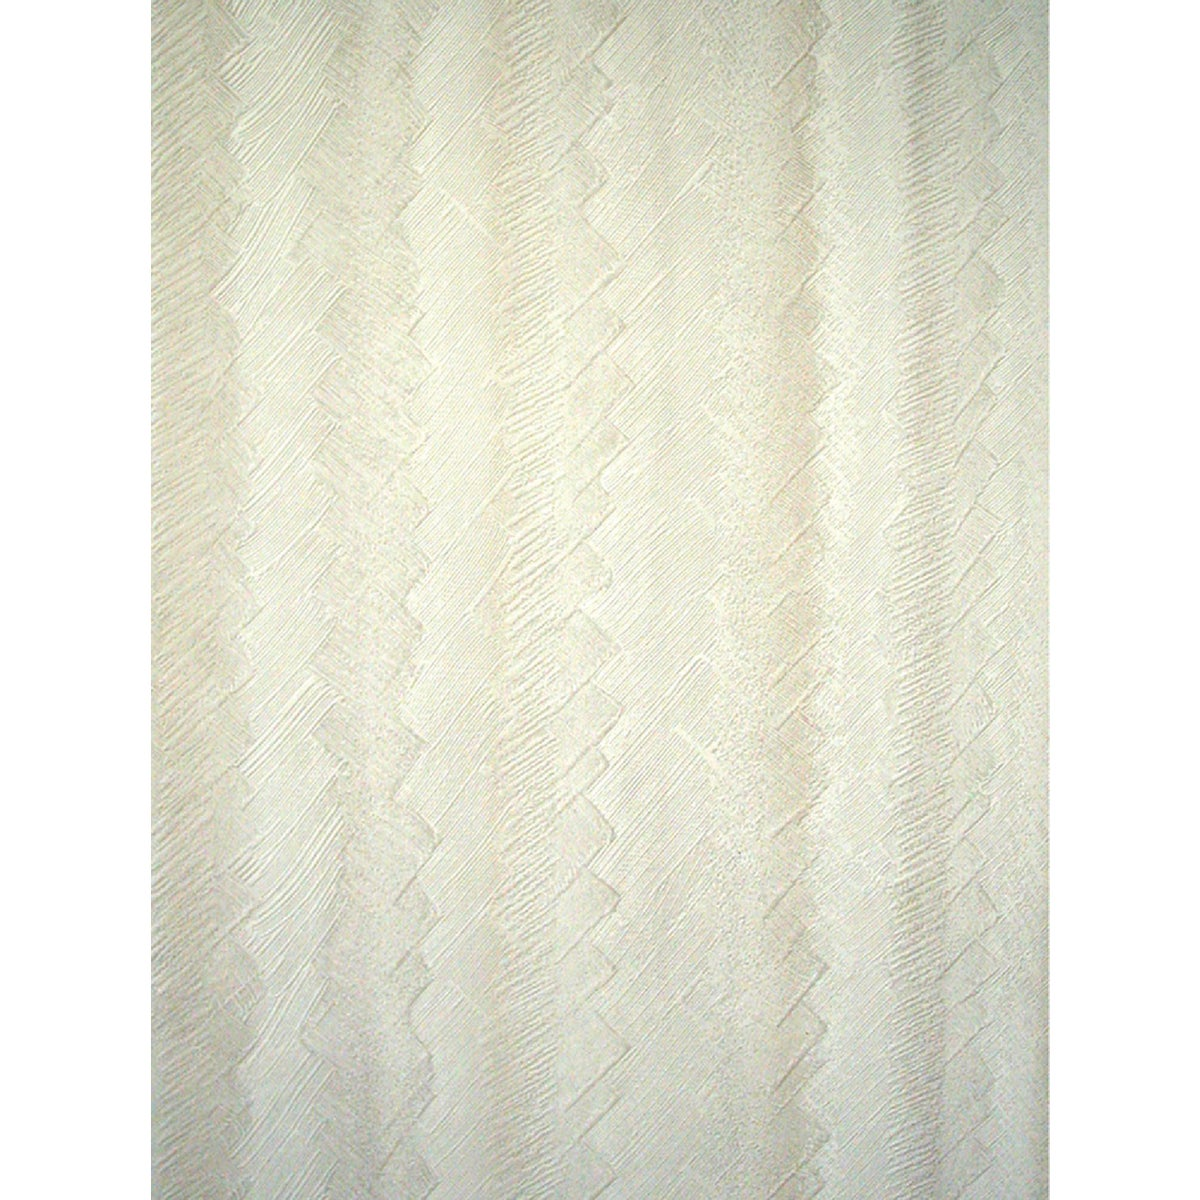 SCULPTURED STRIPE PANEL - 496 by Dpi Decorative Panel